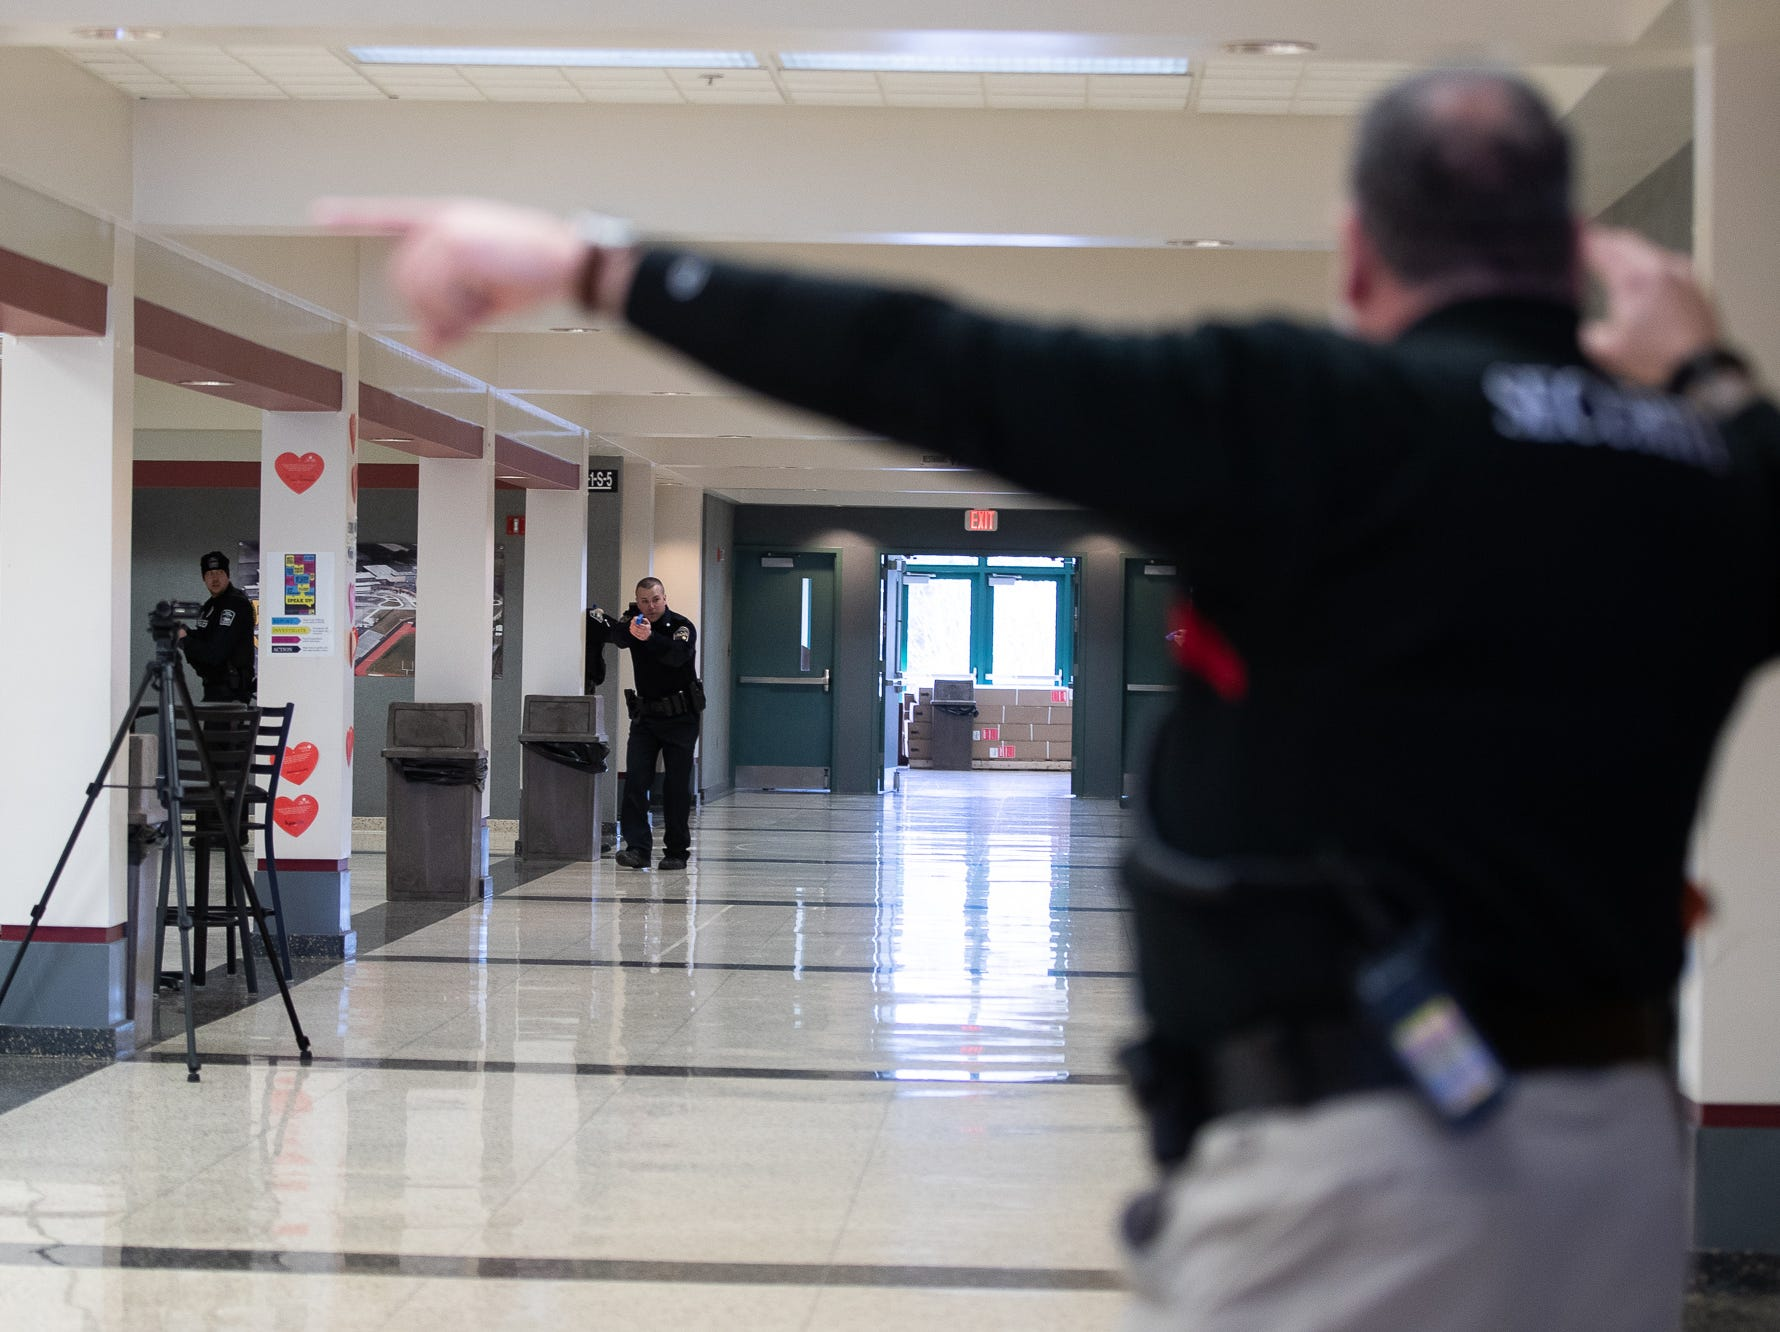 Police officers are directed by a school security guard to a downed shooter while taking part in an active shooter drill at South Western High School, Monday, Jan. 21, 2019, in Penn Township. The drill simulated multiple scenarios involving an active shooter, allowing school security and local law enforcement agencies a hands-on opportunity to drill on engaging an active shooter while also giving school staff experience with how real world scenarios could unfold.